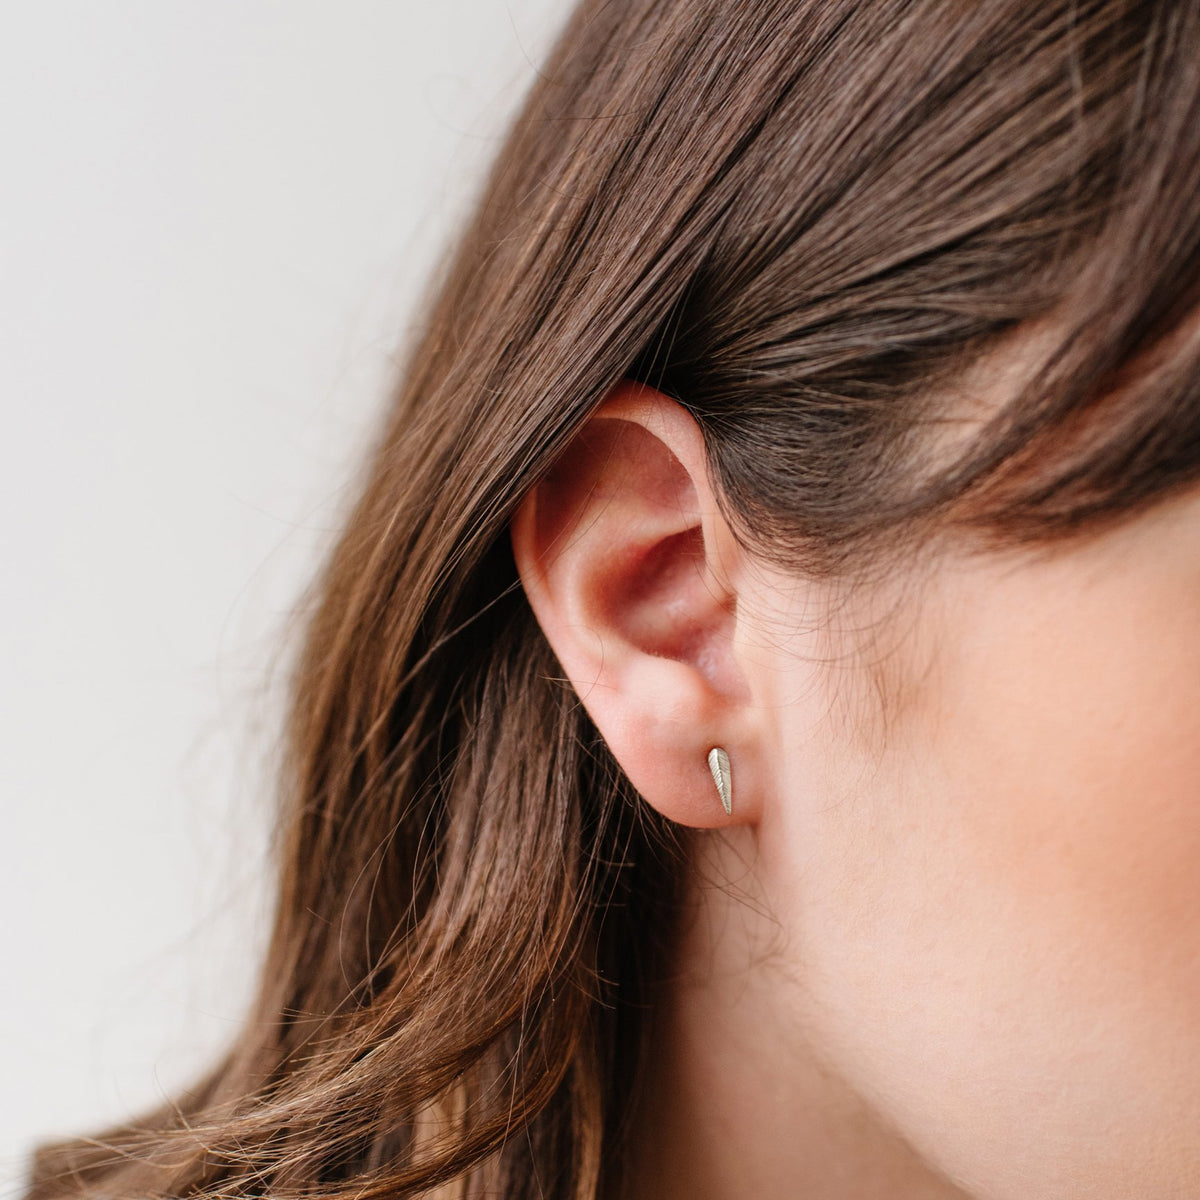 MINI BRAVE STUD EARRINGS - SILVER - SO PRETTY CARA COTTER